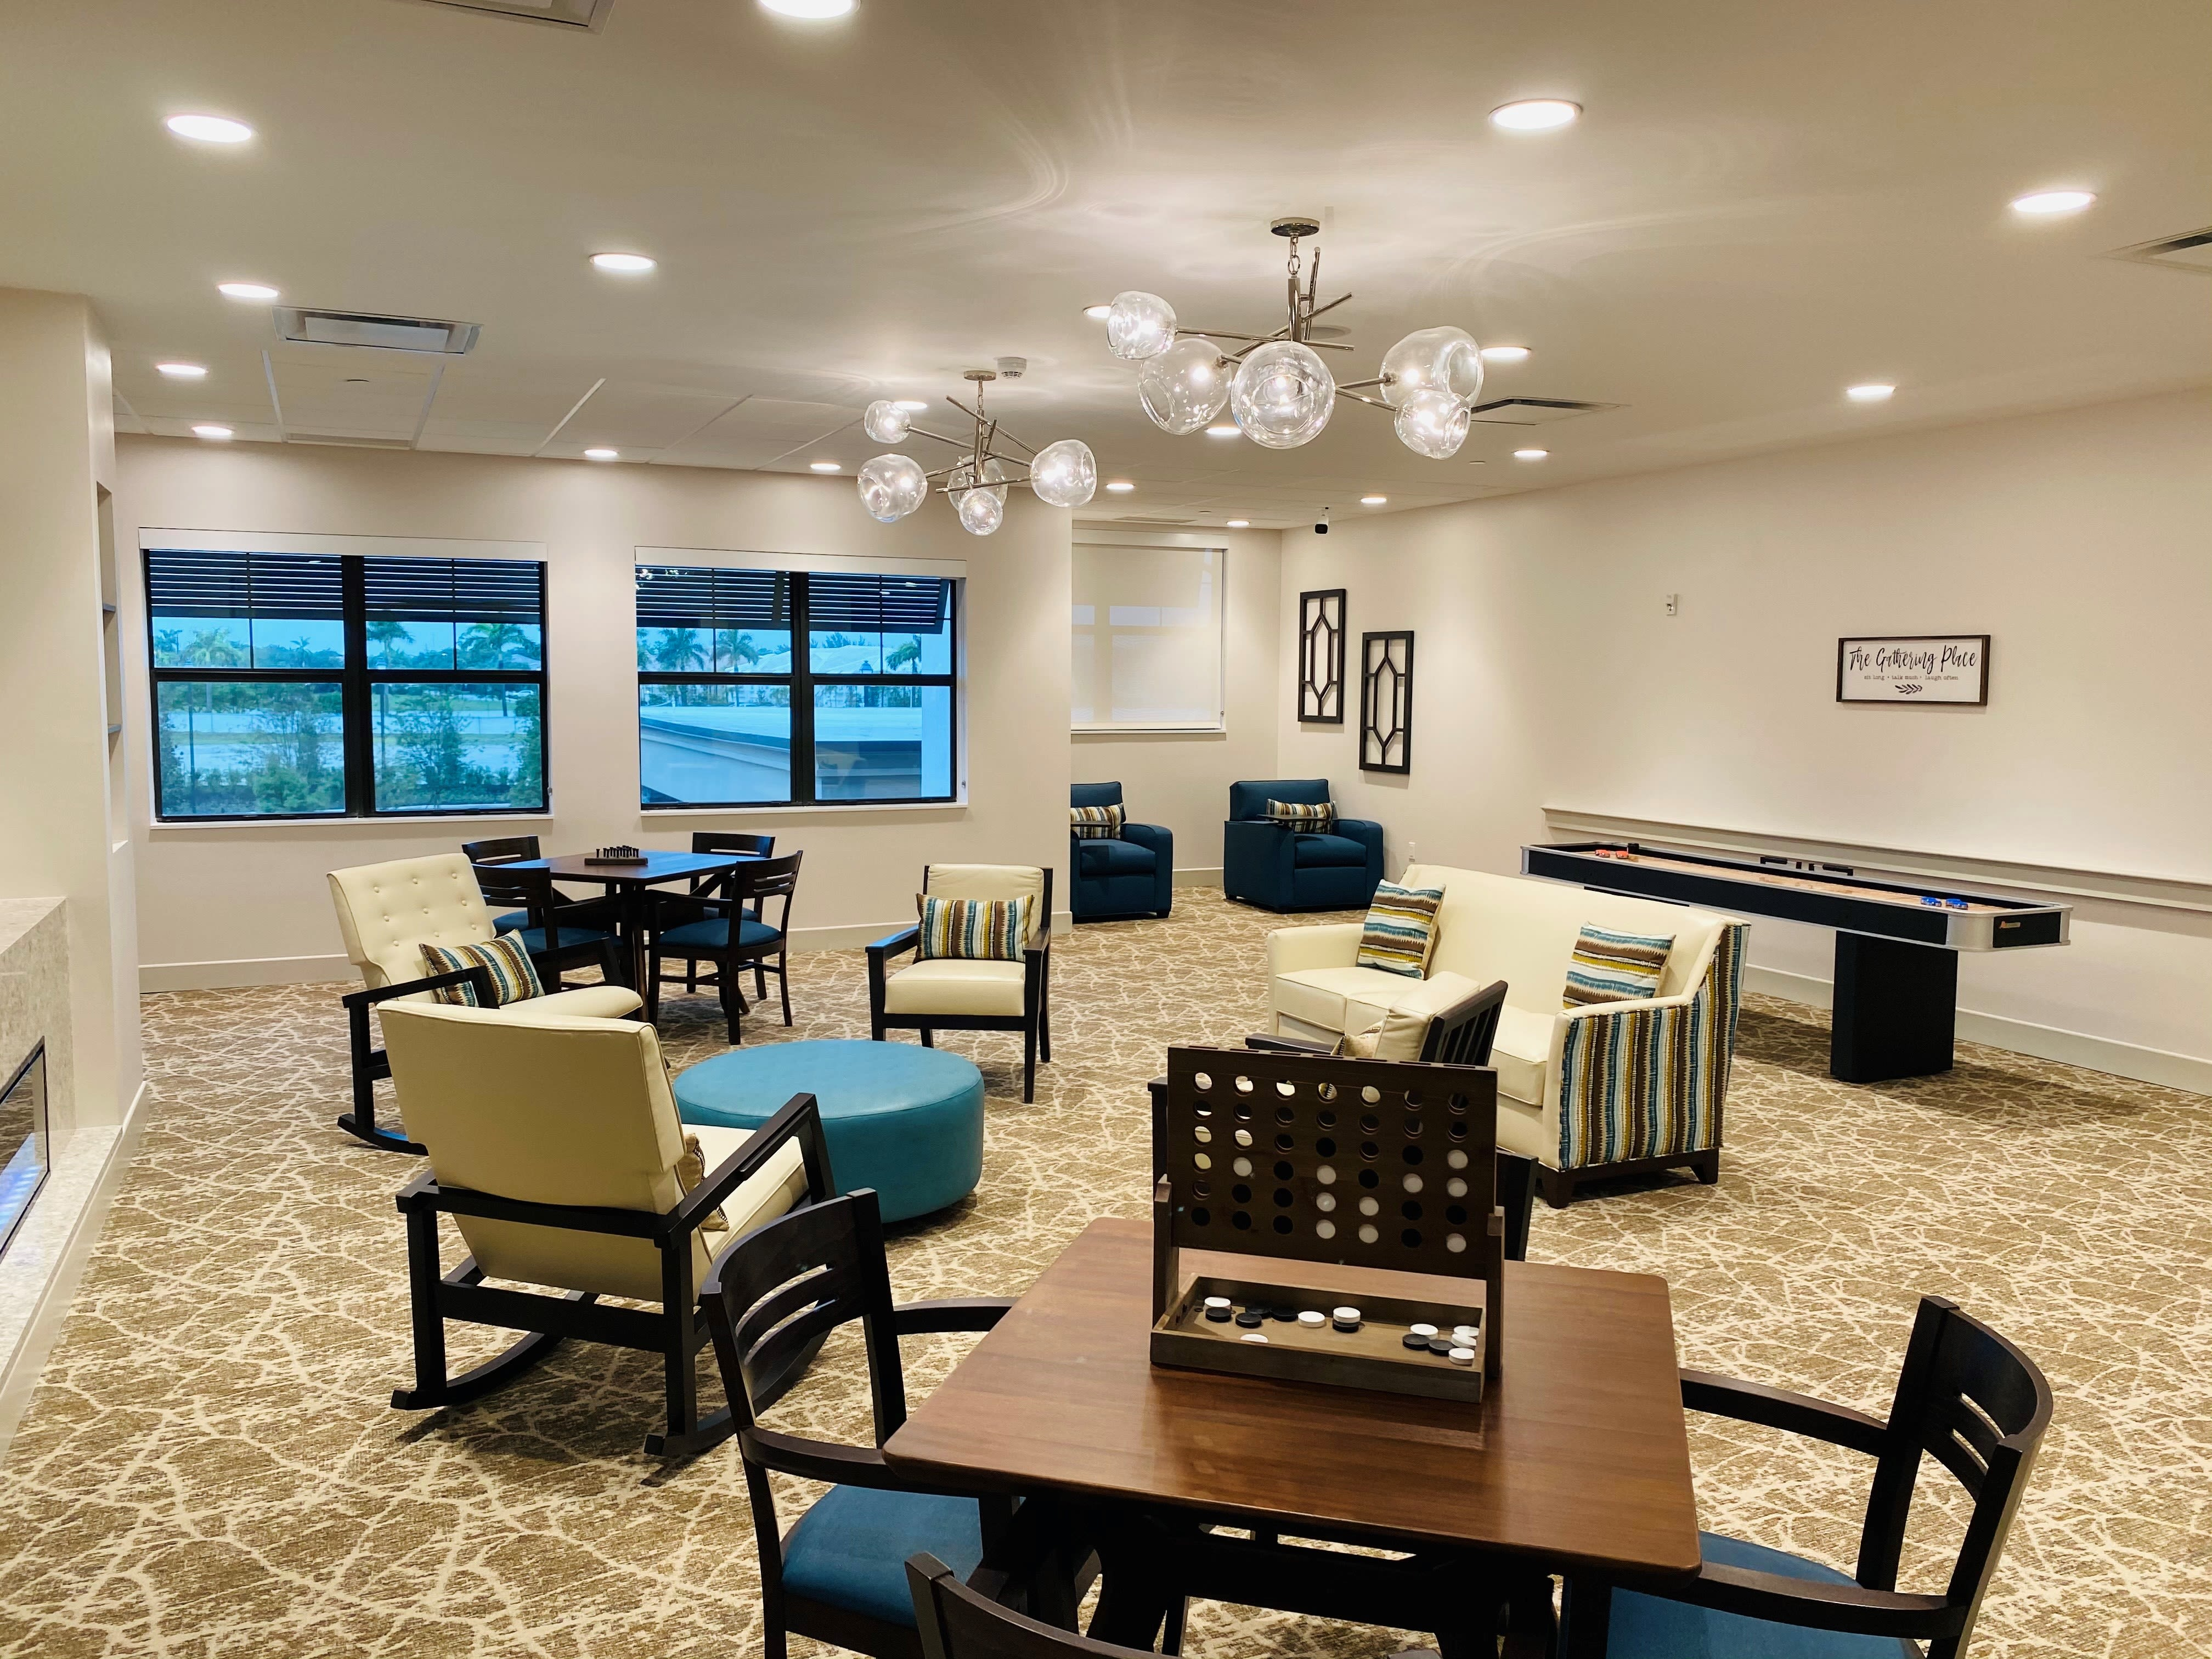 Common room at Inspired Living Delray Beach in Delray Beach, Florida.